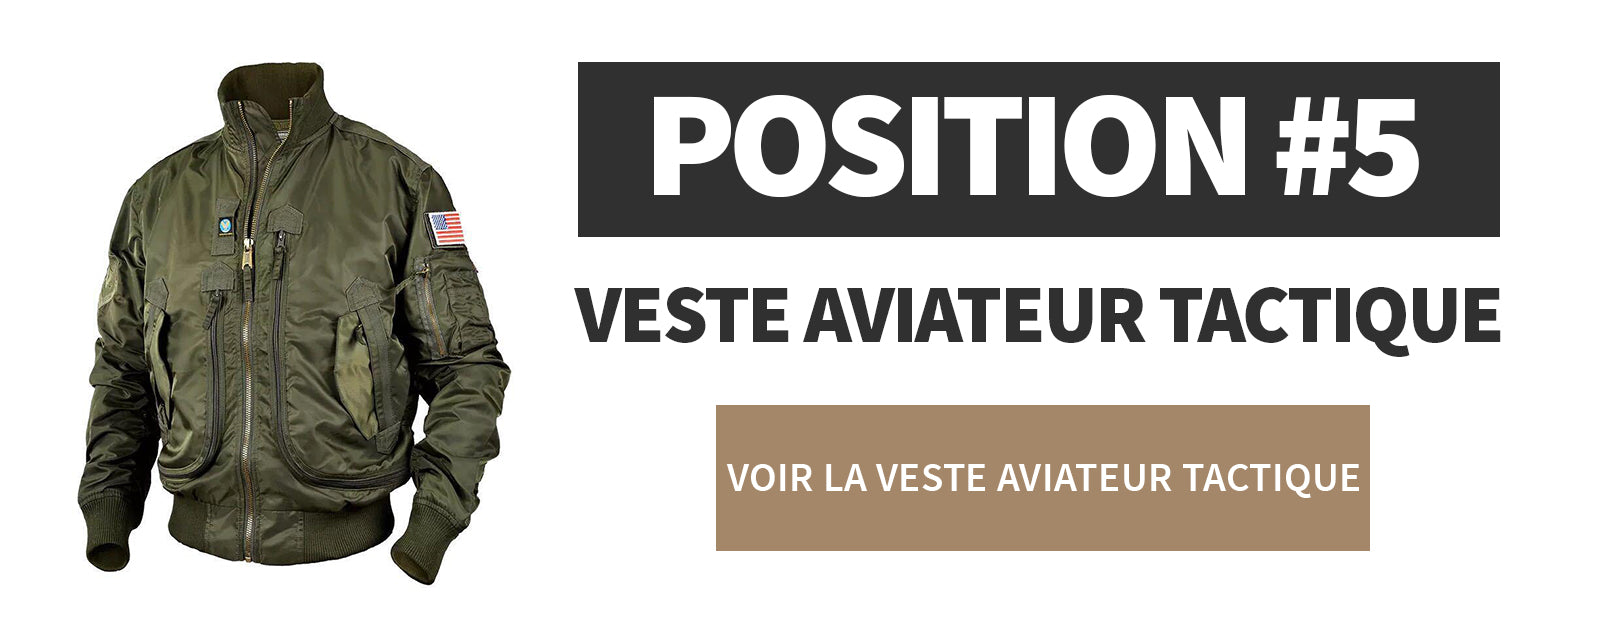 Veste Aviateur Tactique